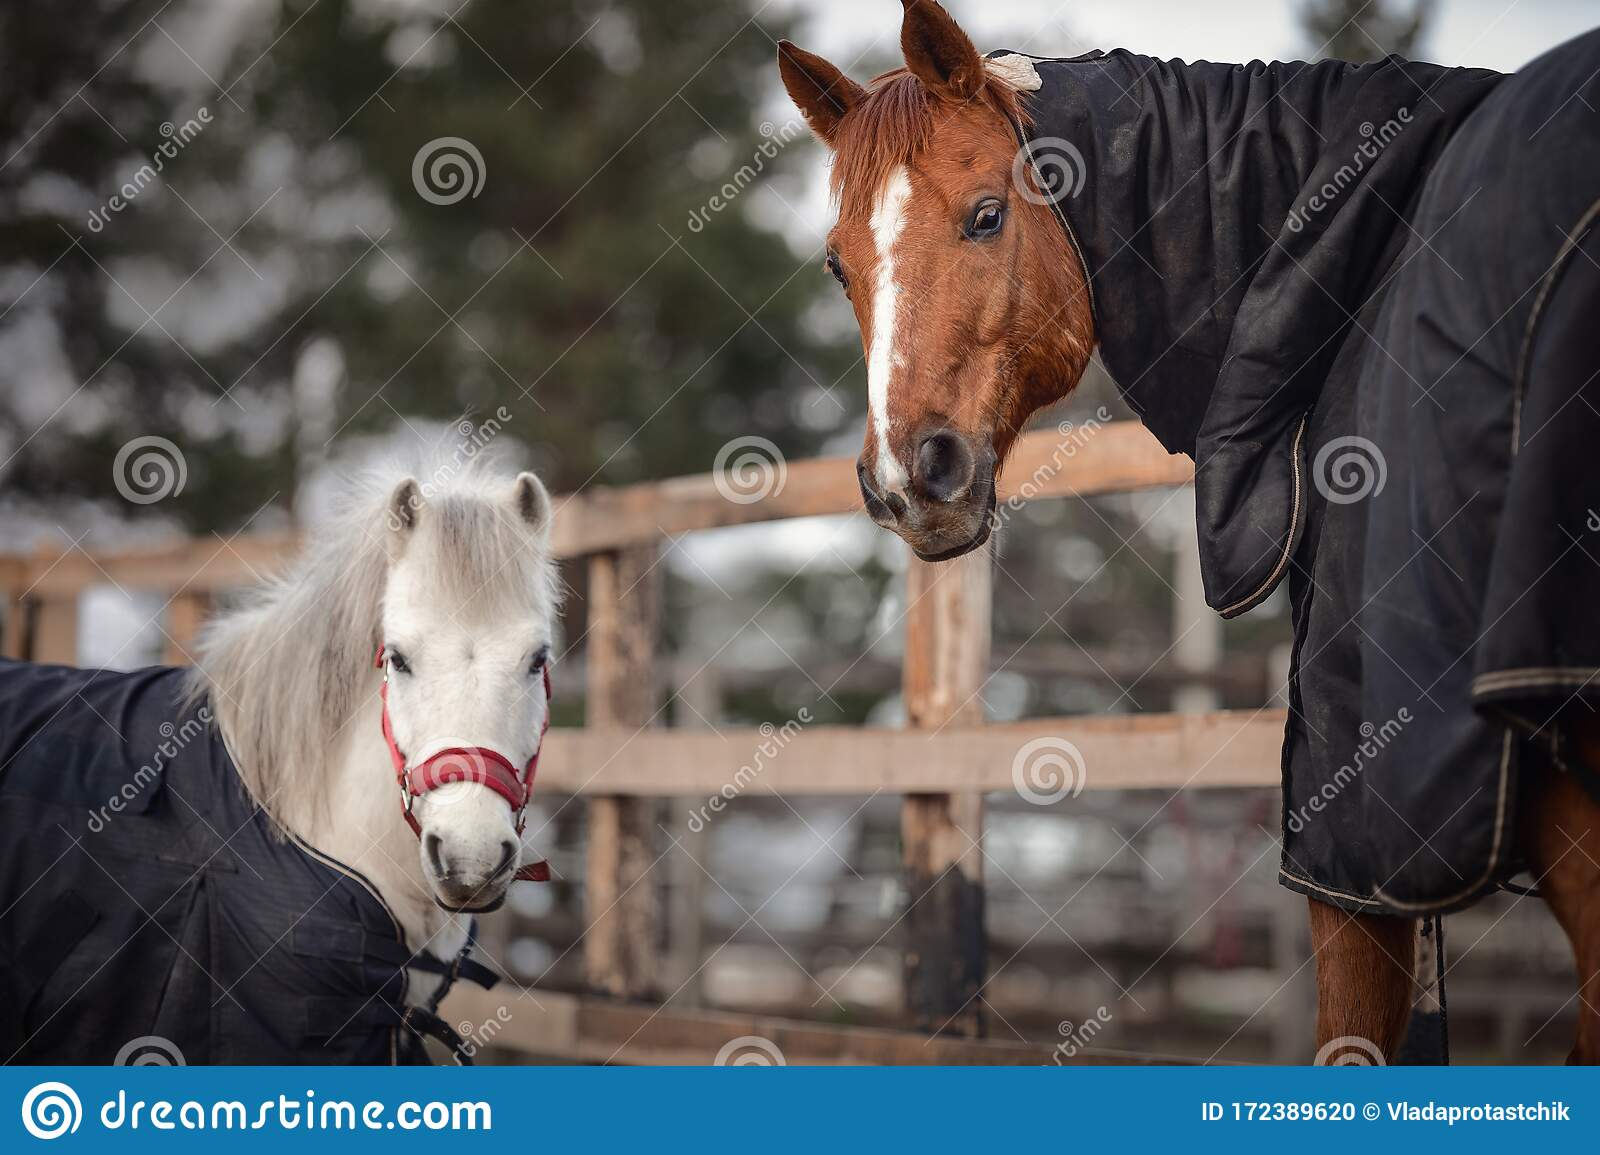 178 Horse Halters Photos Free Royalty Free Stock Photos From Dreamstime